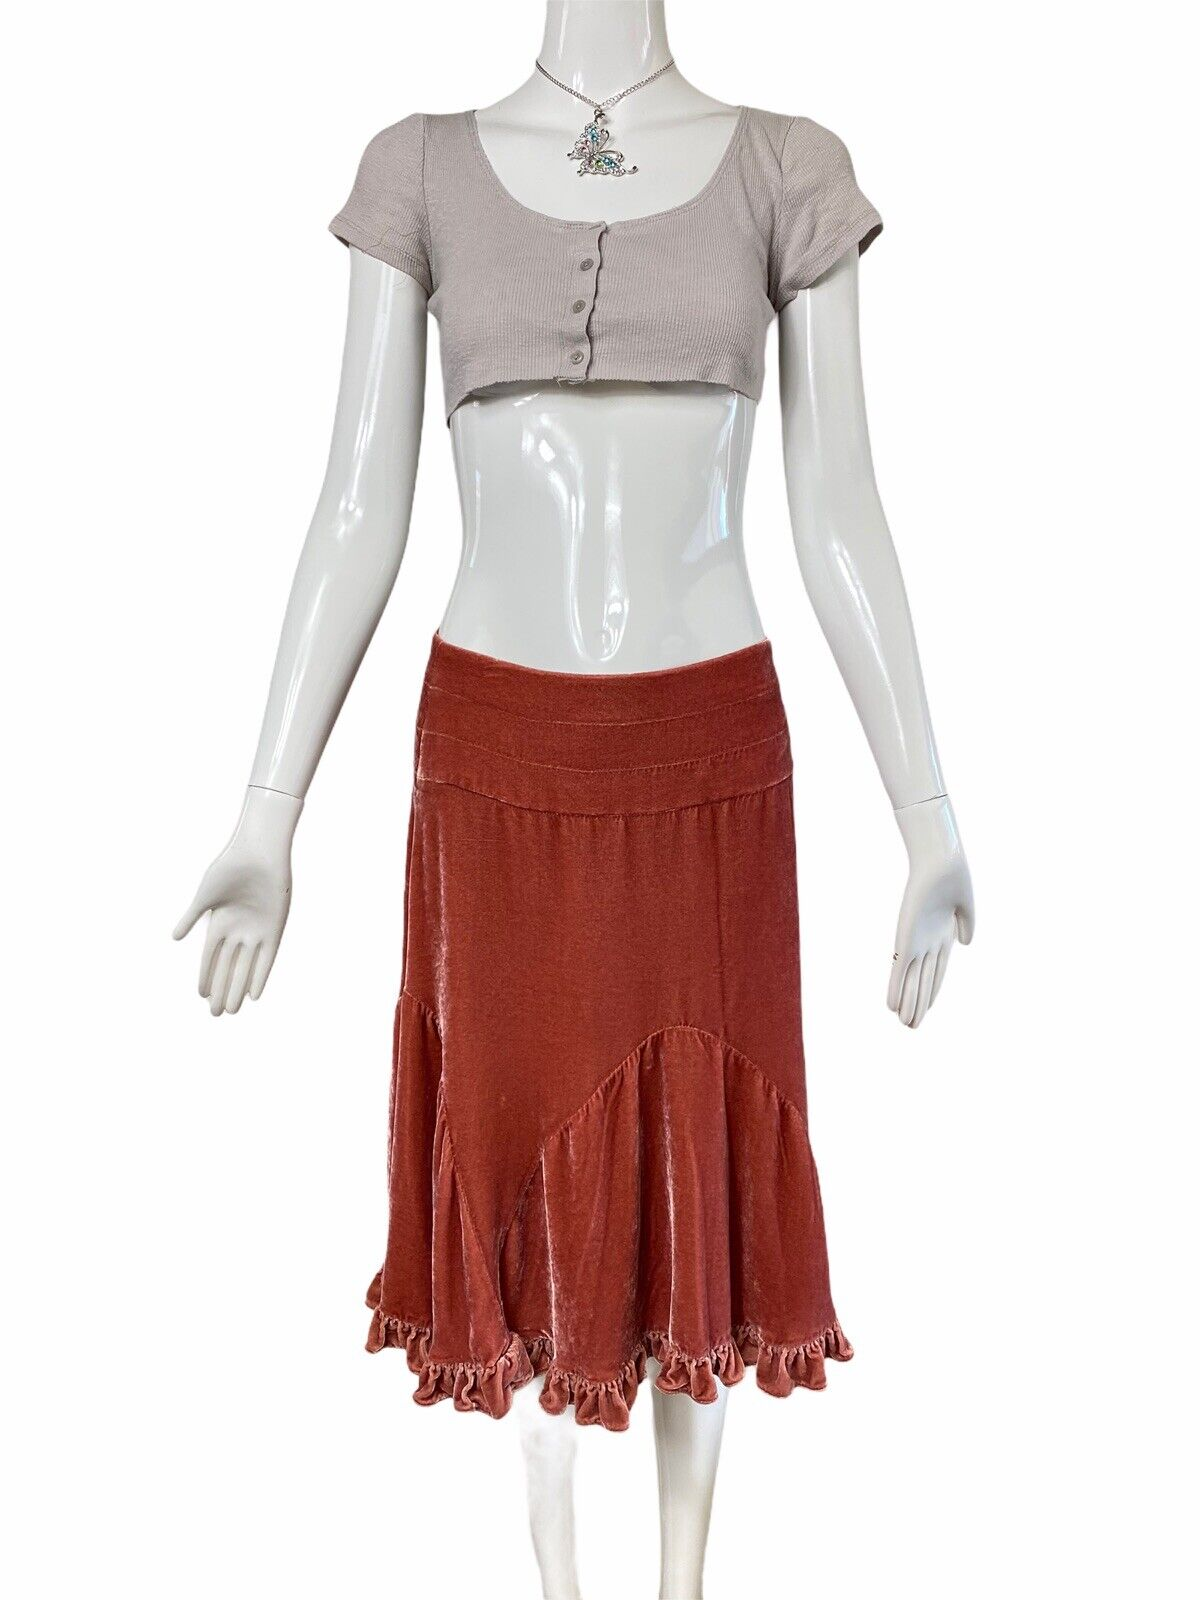 Fairycore Grunge Ribbed Crop Top Y2k 90s Aesthetic - image 8